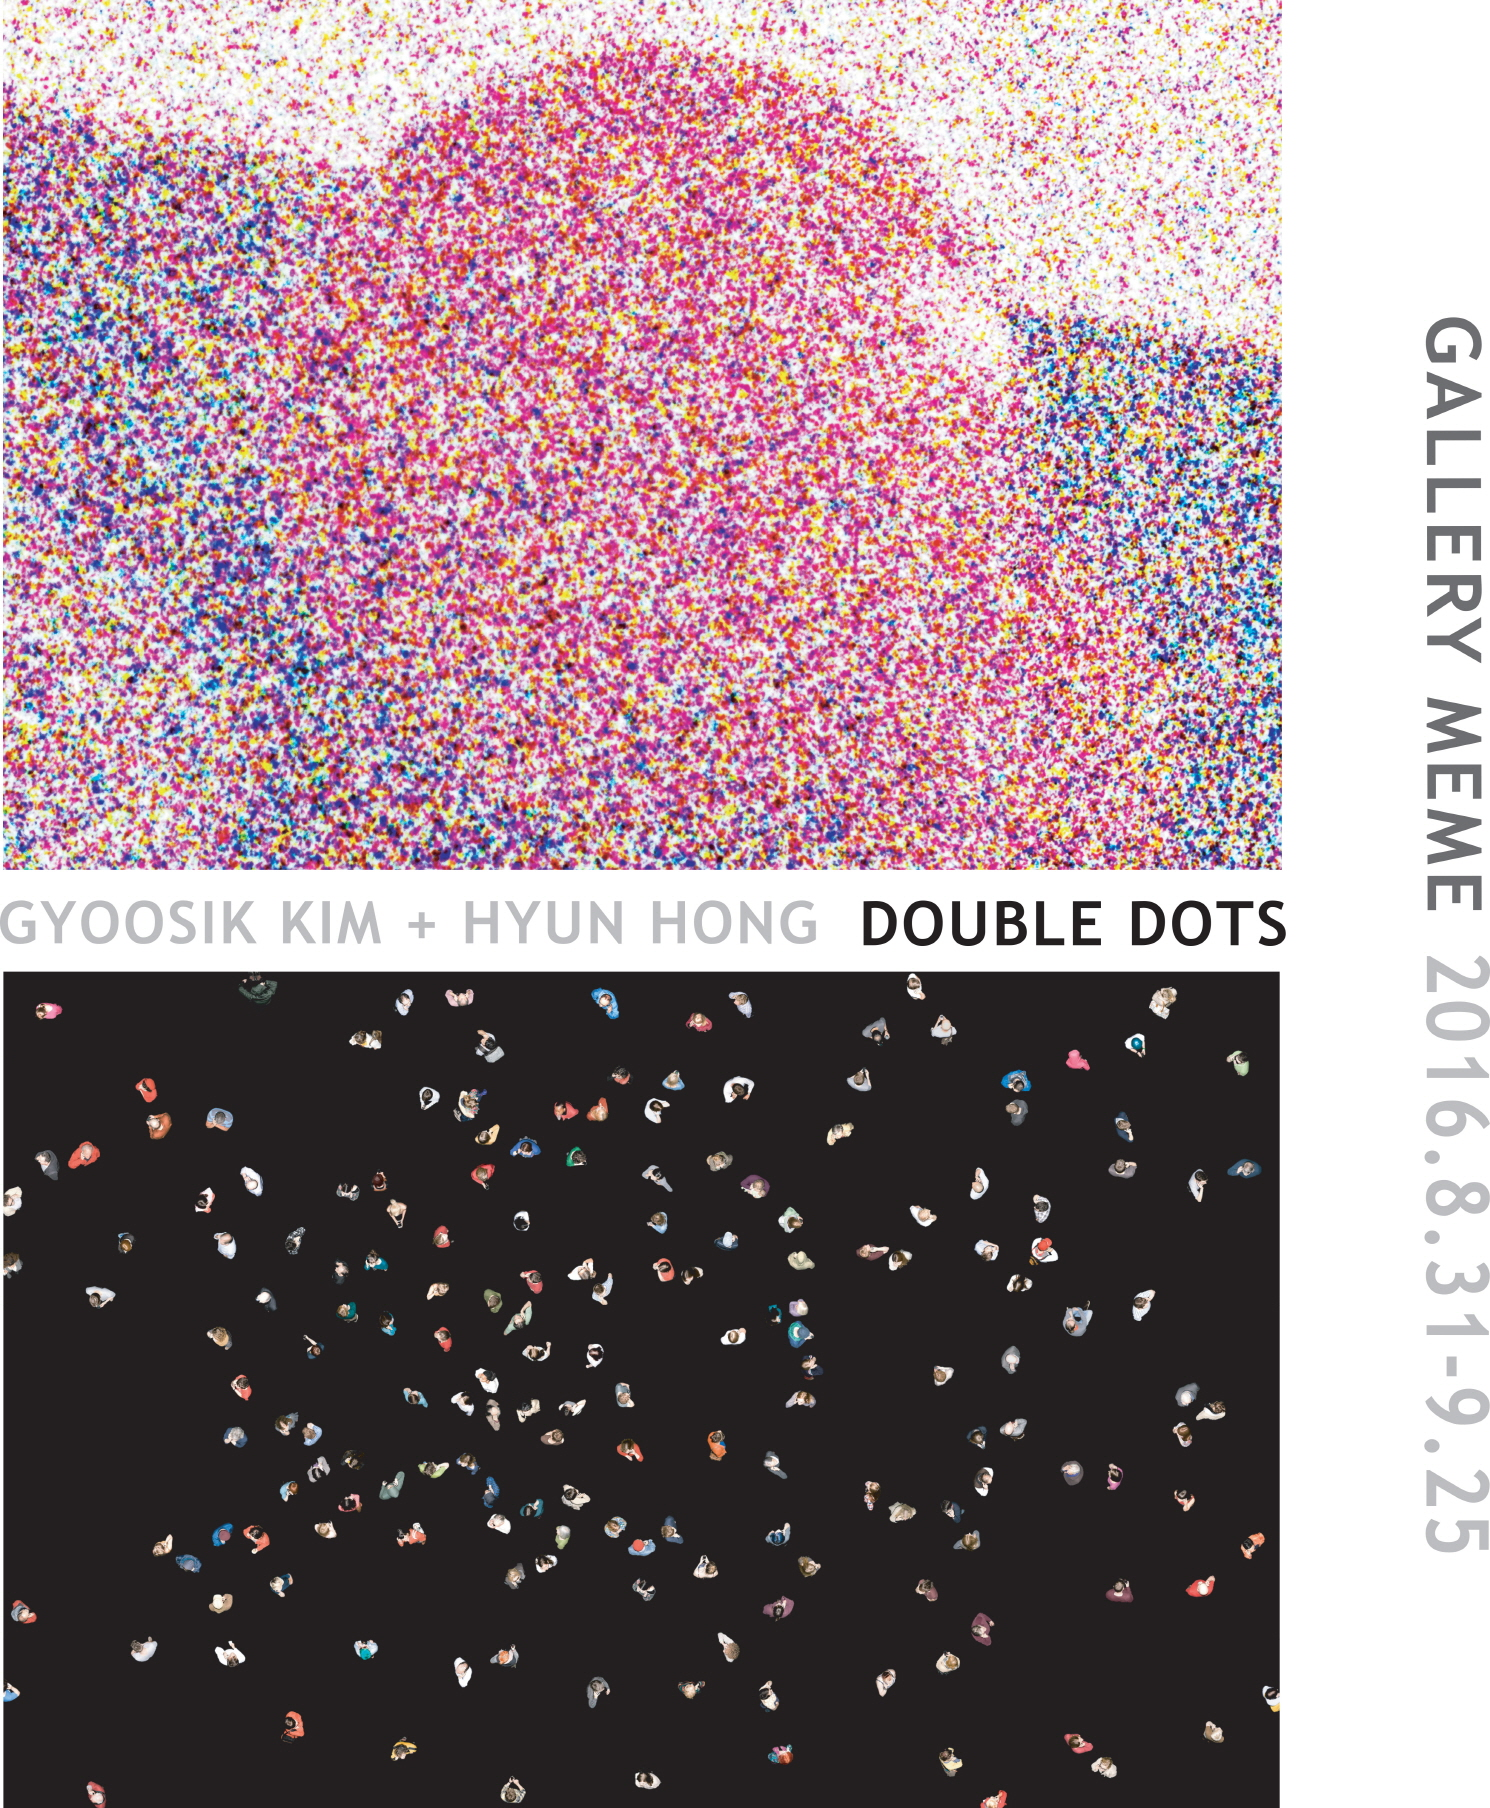 DOUBLE DOTS